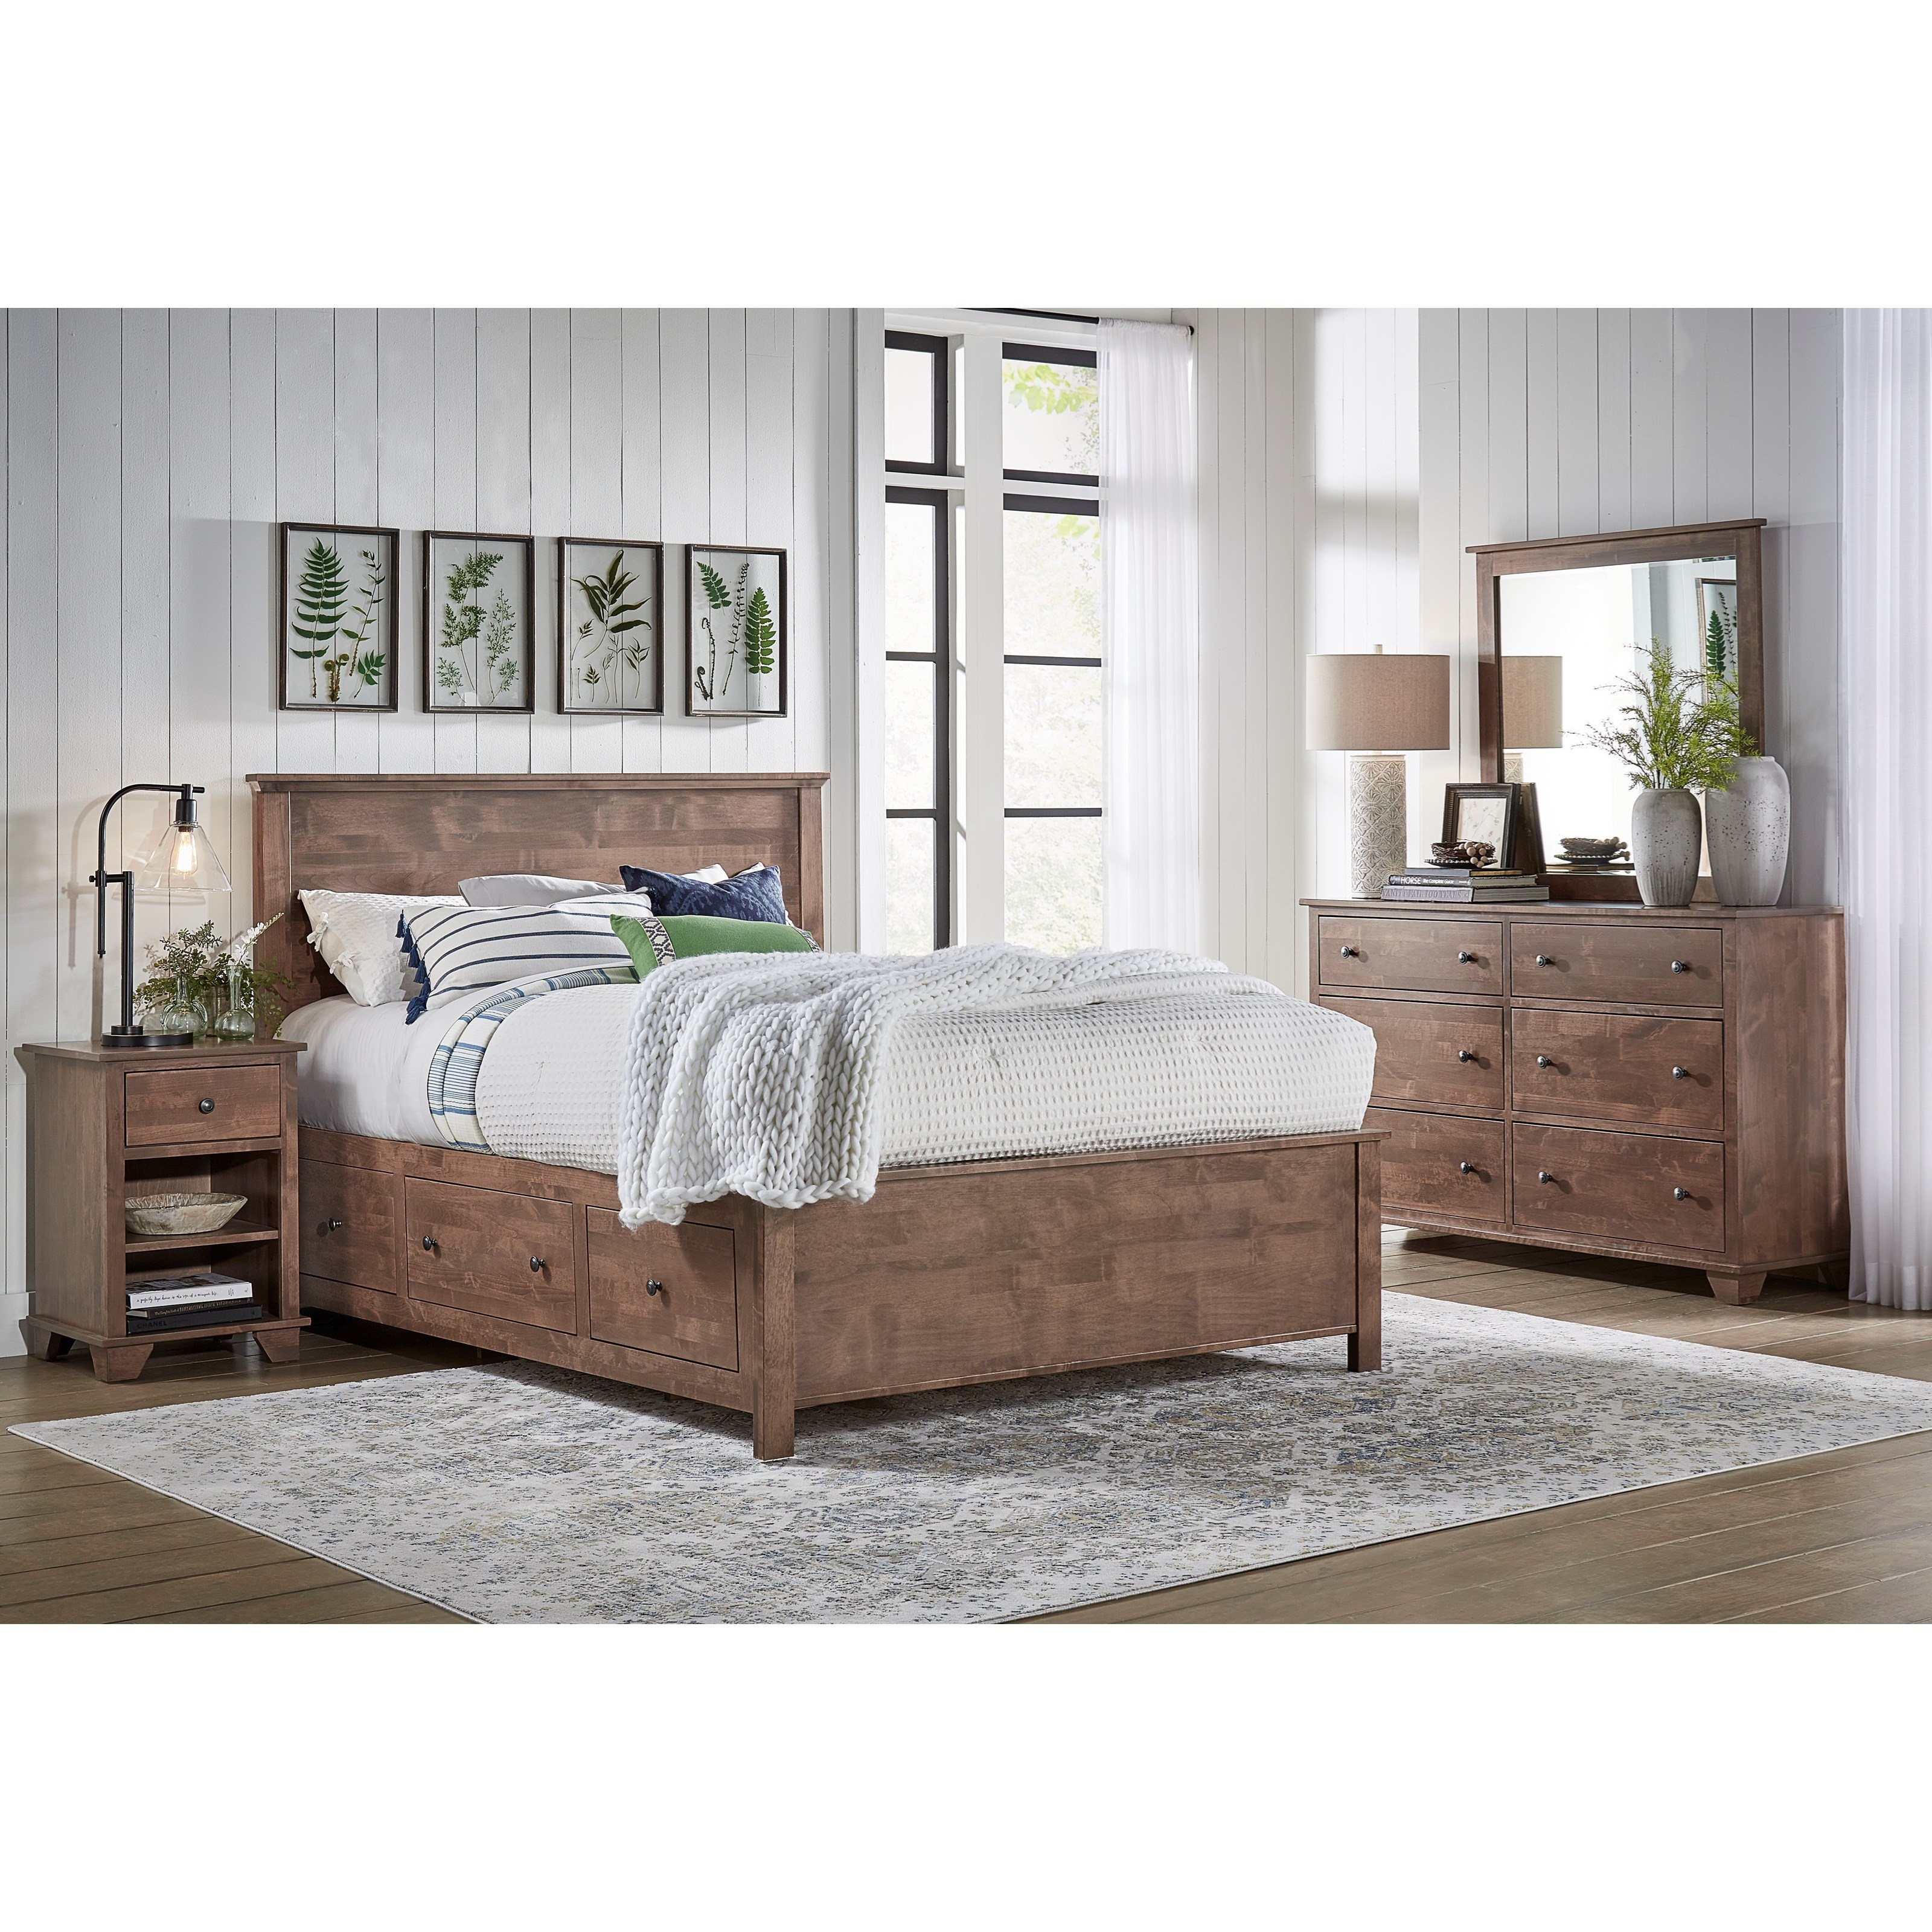 Elevated Storage Bed Bedroom Group